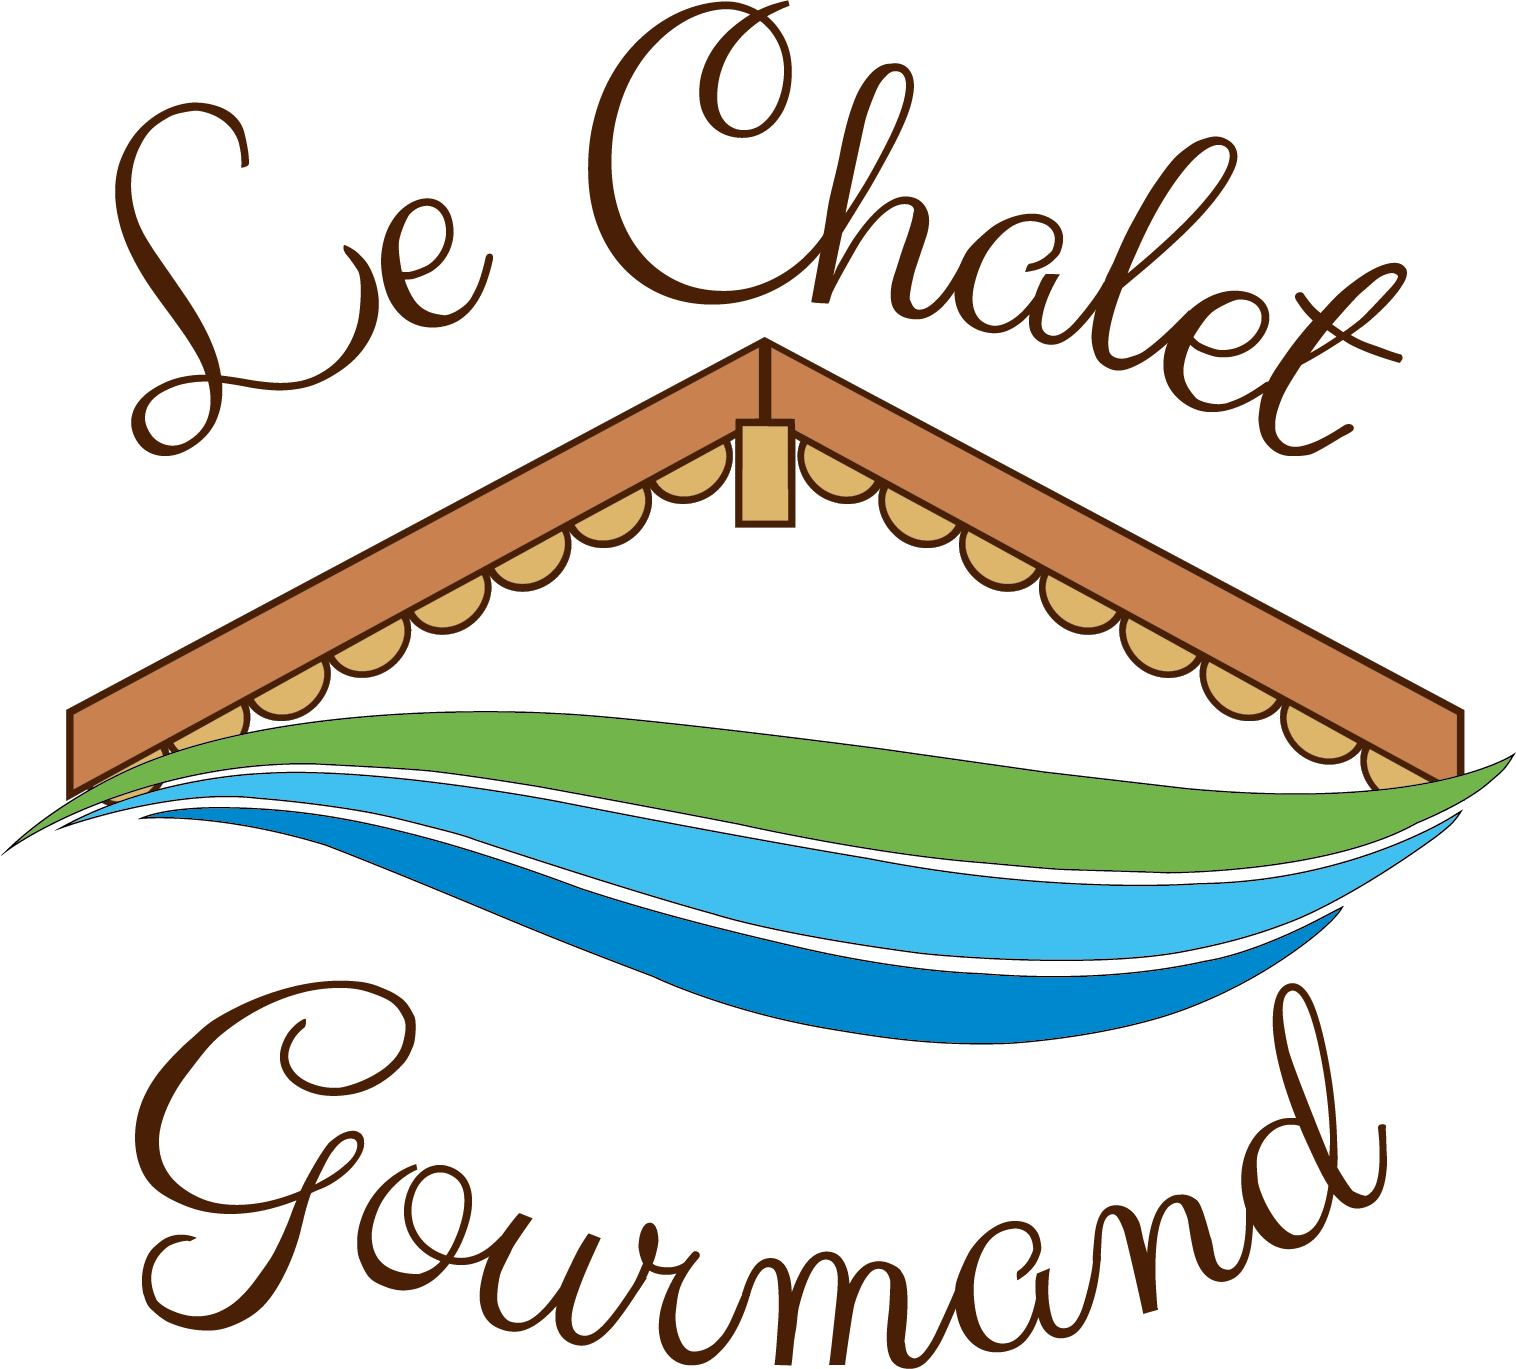 Le Chalet Gourmand - Swingolf de Lavigny